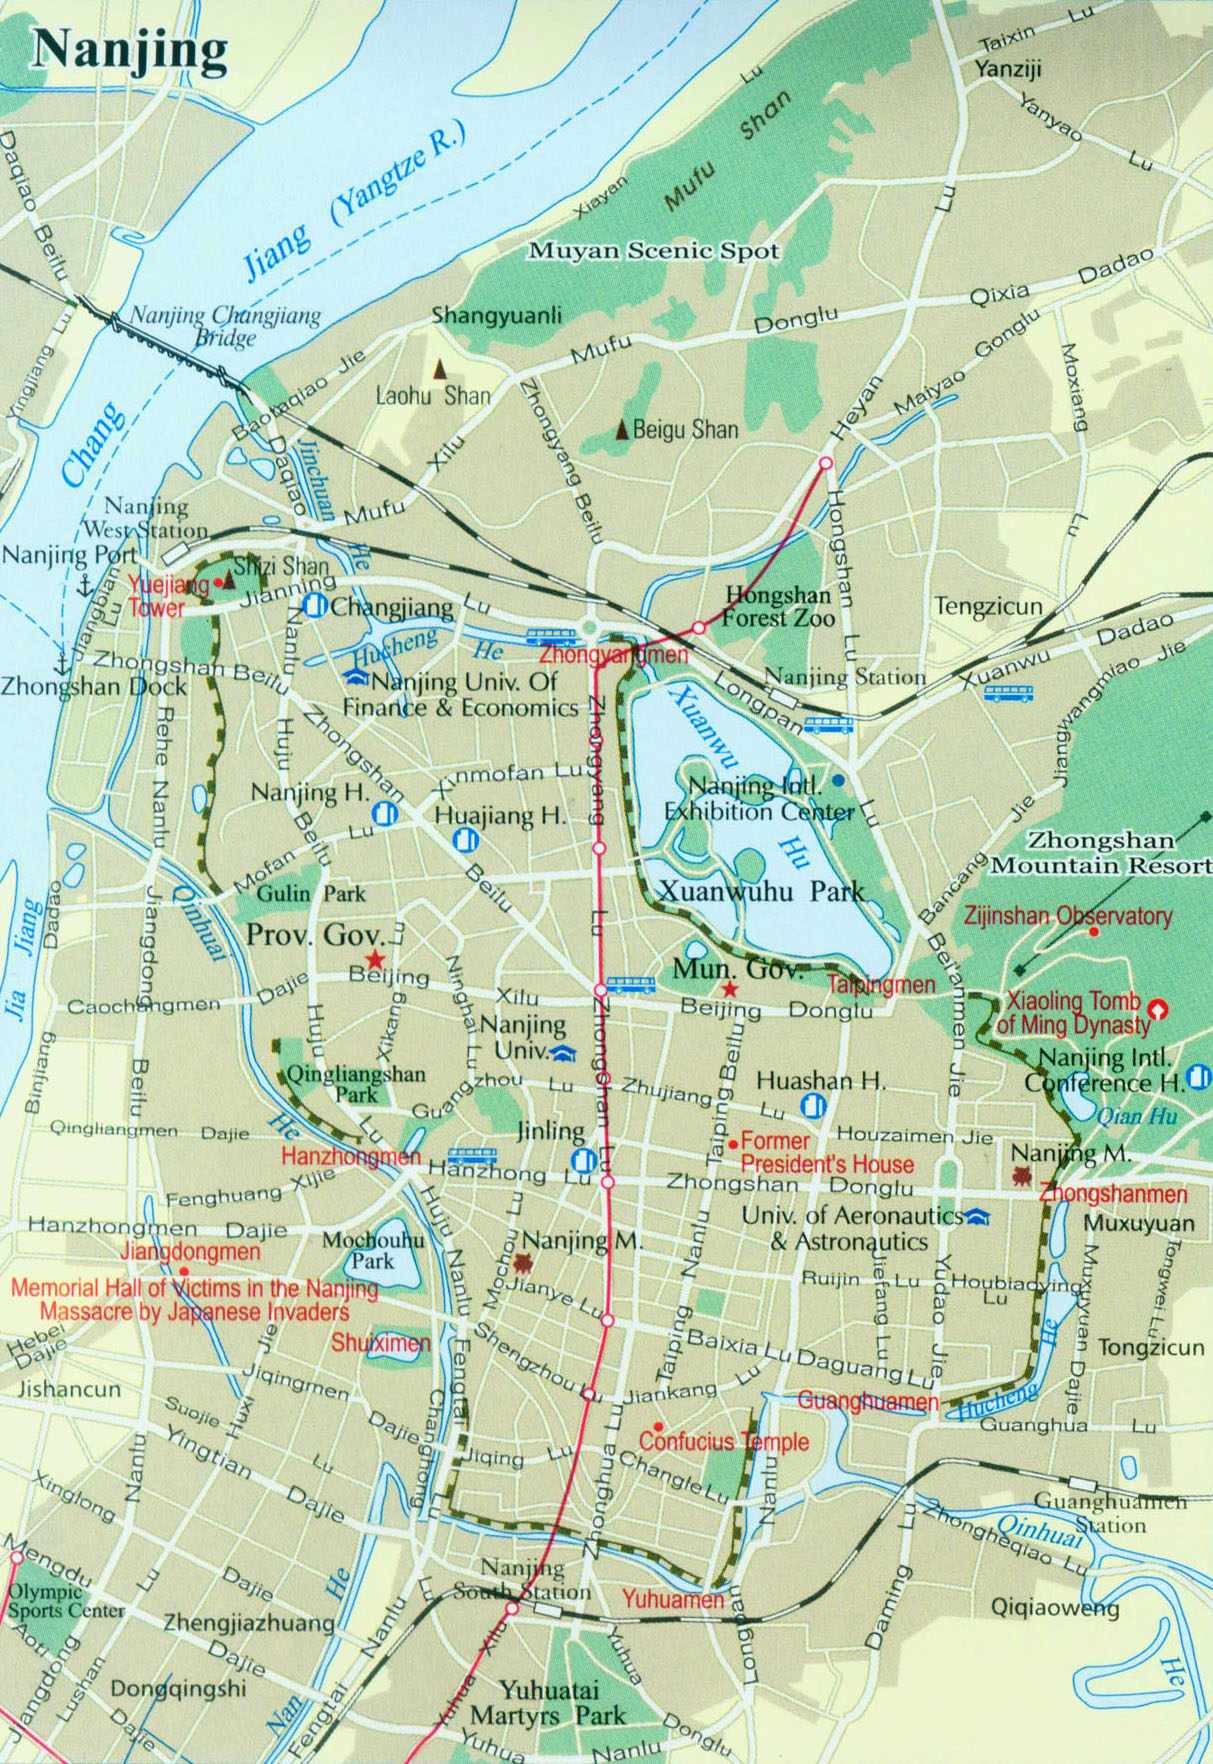 A map of the city of Nanjing and scenic areas